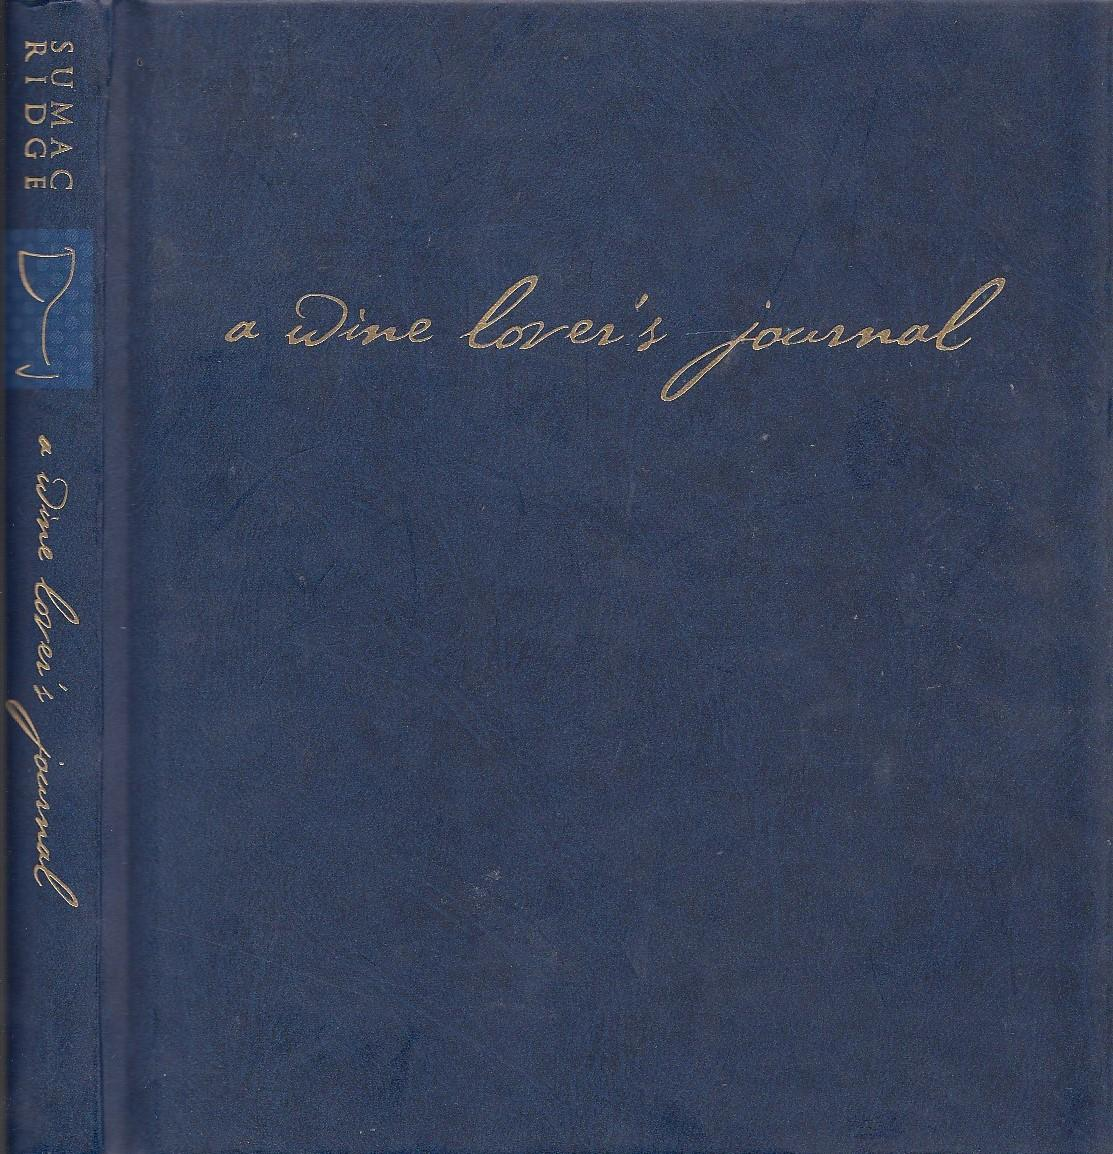 A Lovers Journal